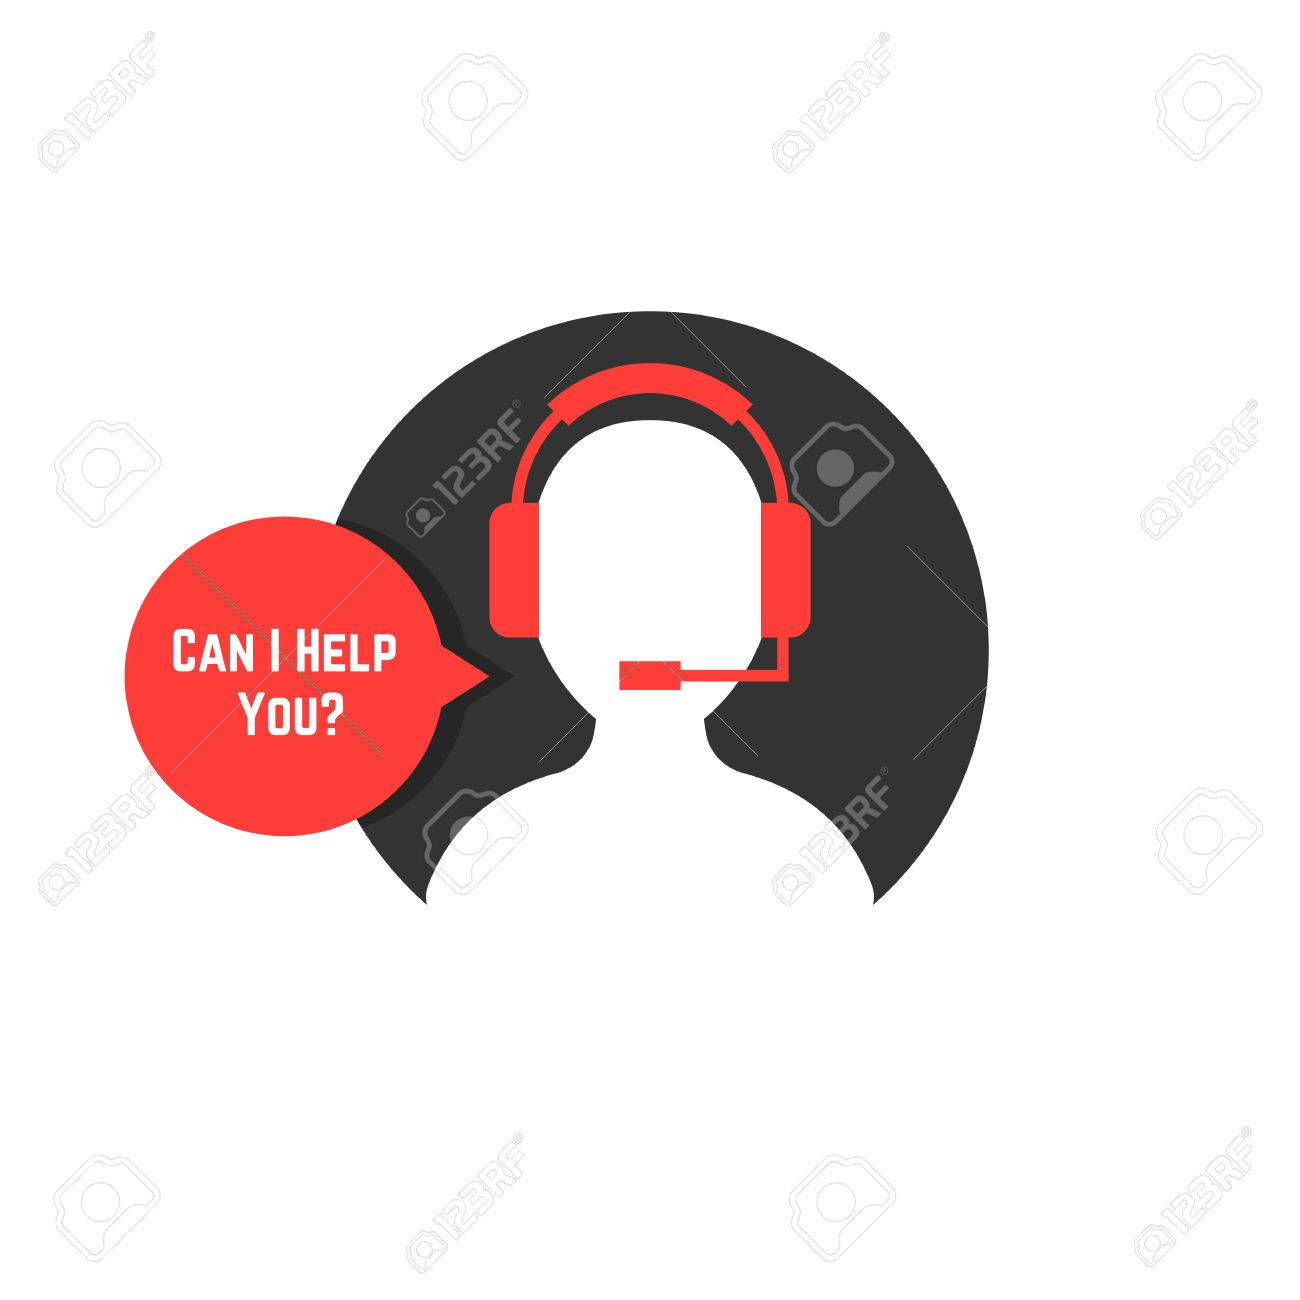 silhouette assistant with red bubble. concept of crm, ui, seo, repair, learning, tech care, e-commerce, retail, mobile app. flat style trend modern logo design vector illustration on white background - 82175806